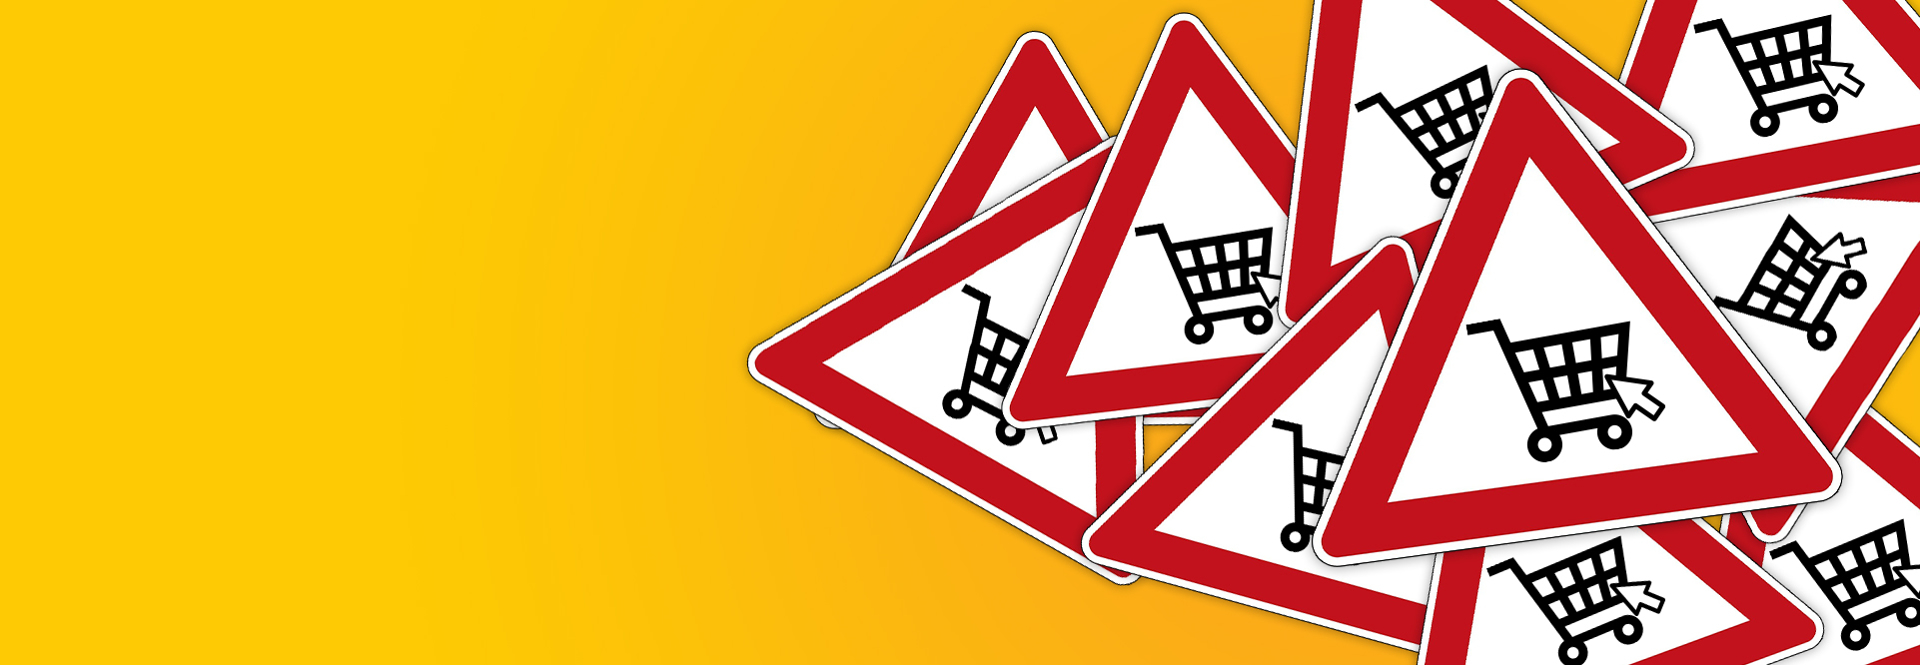 How to Shop Online Safely!